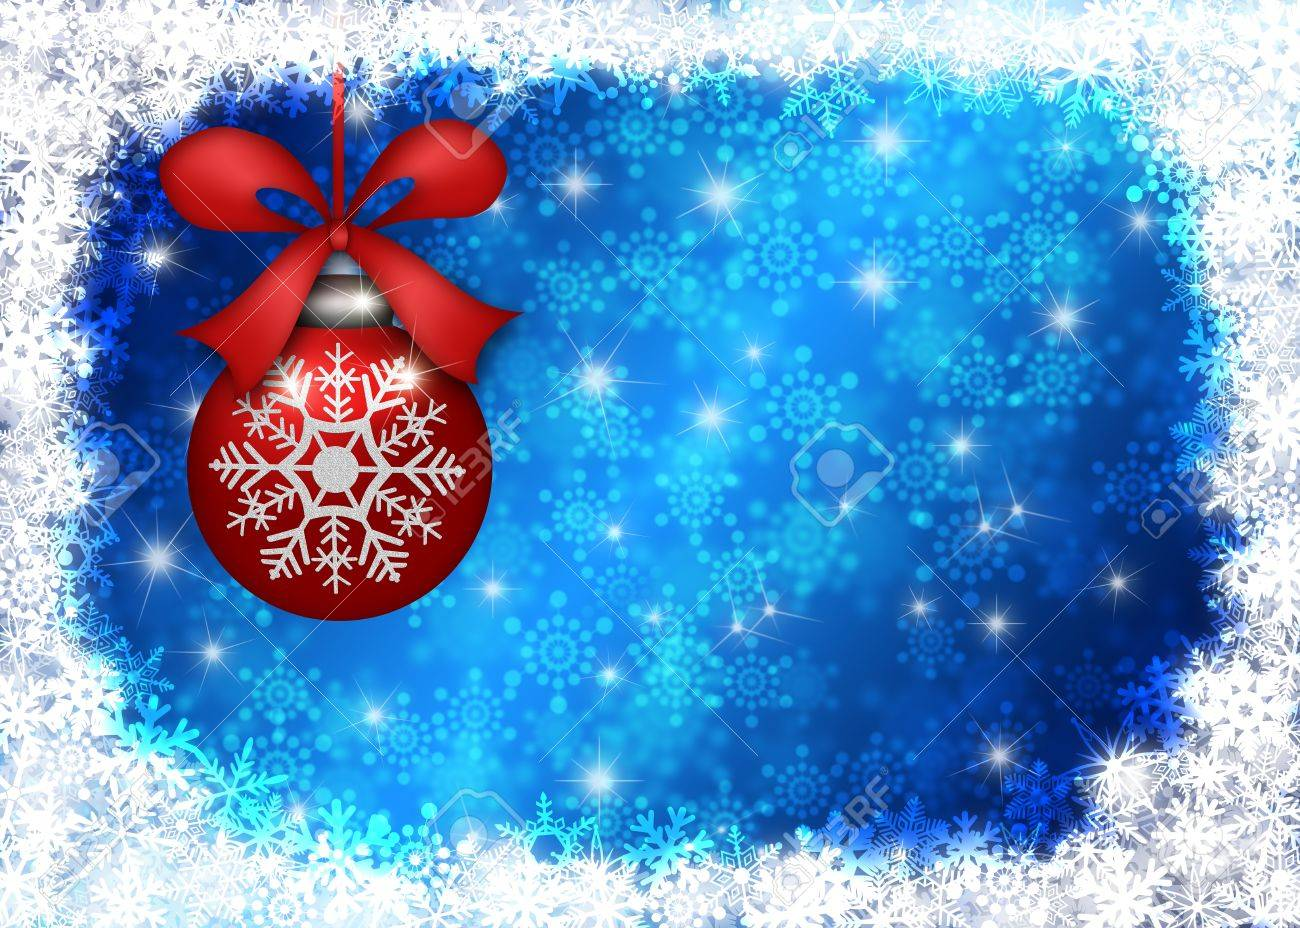 Hanging Red Christmas Tree Ornament with Snowflakes Border and Blue Blurred Background Illustration Stock Illustration - 11585722